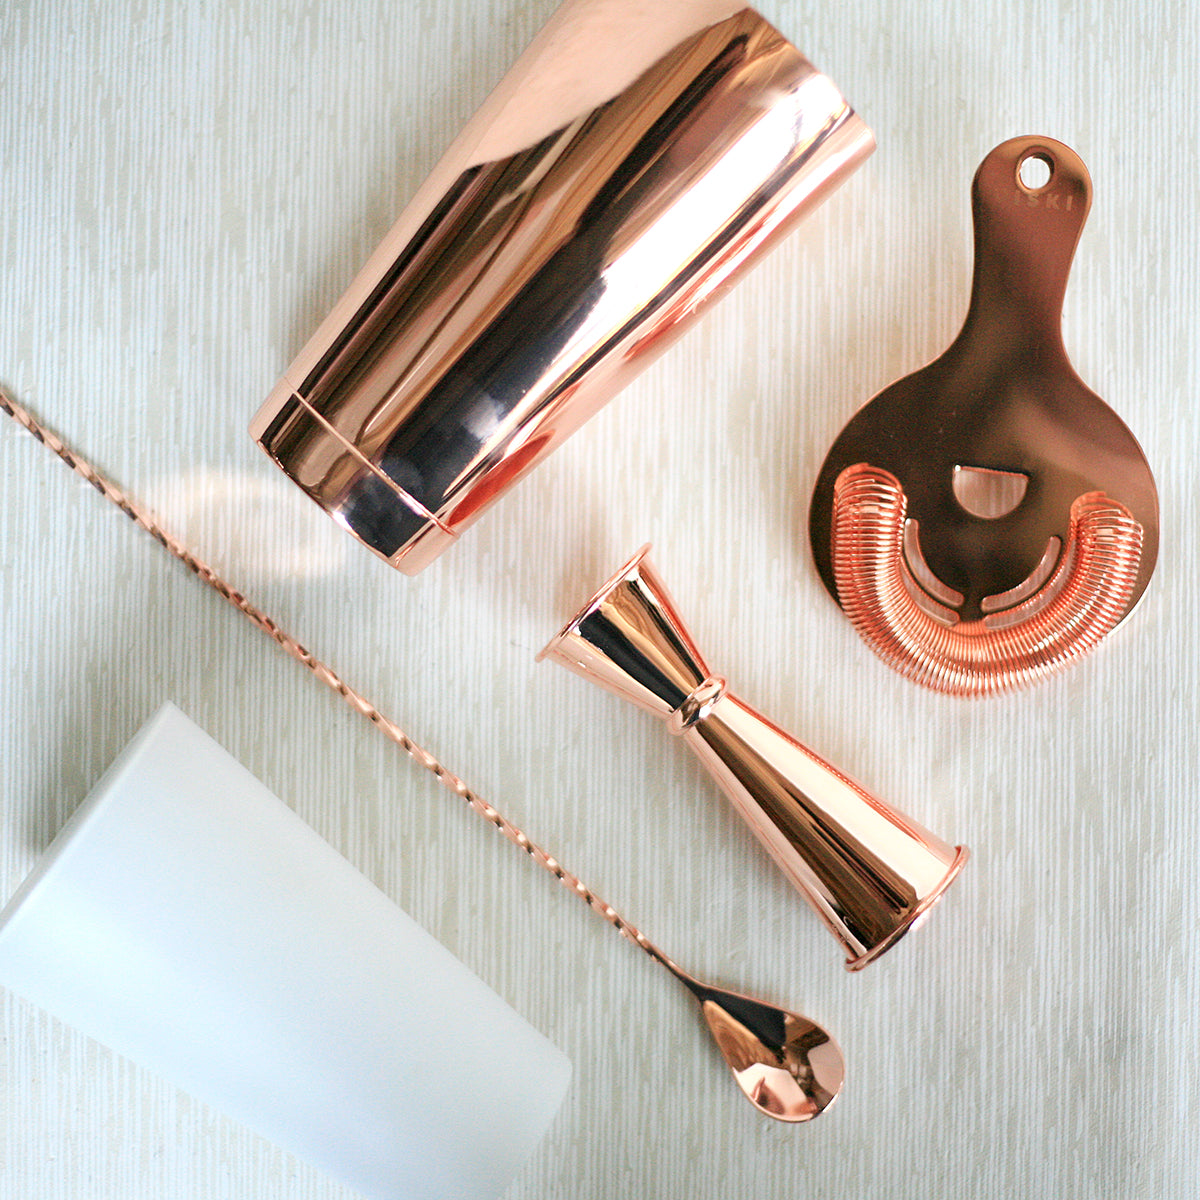 Copper Barware Basics Kit